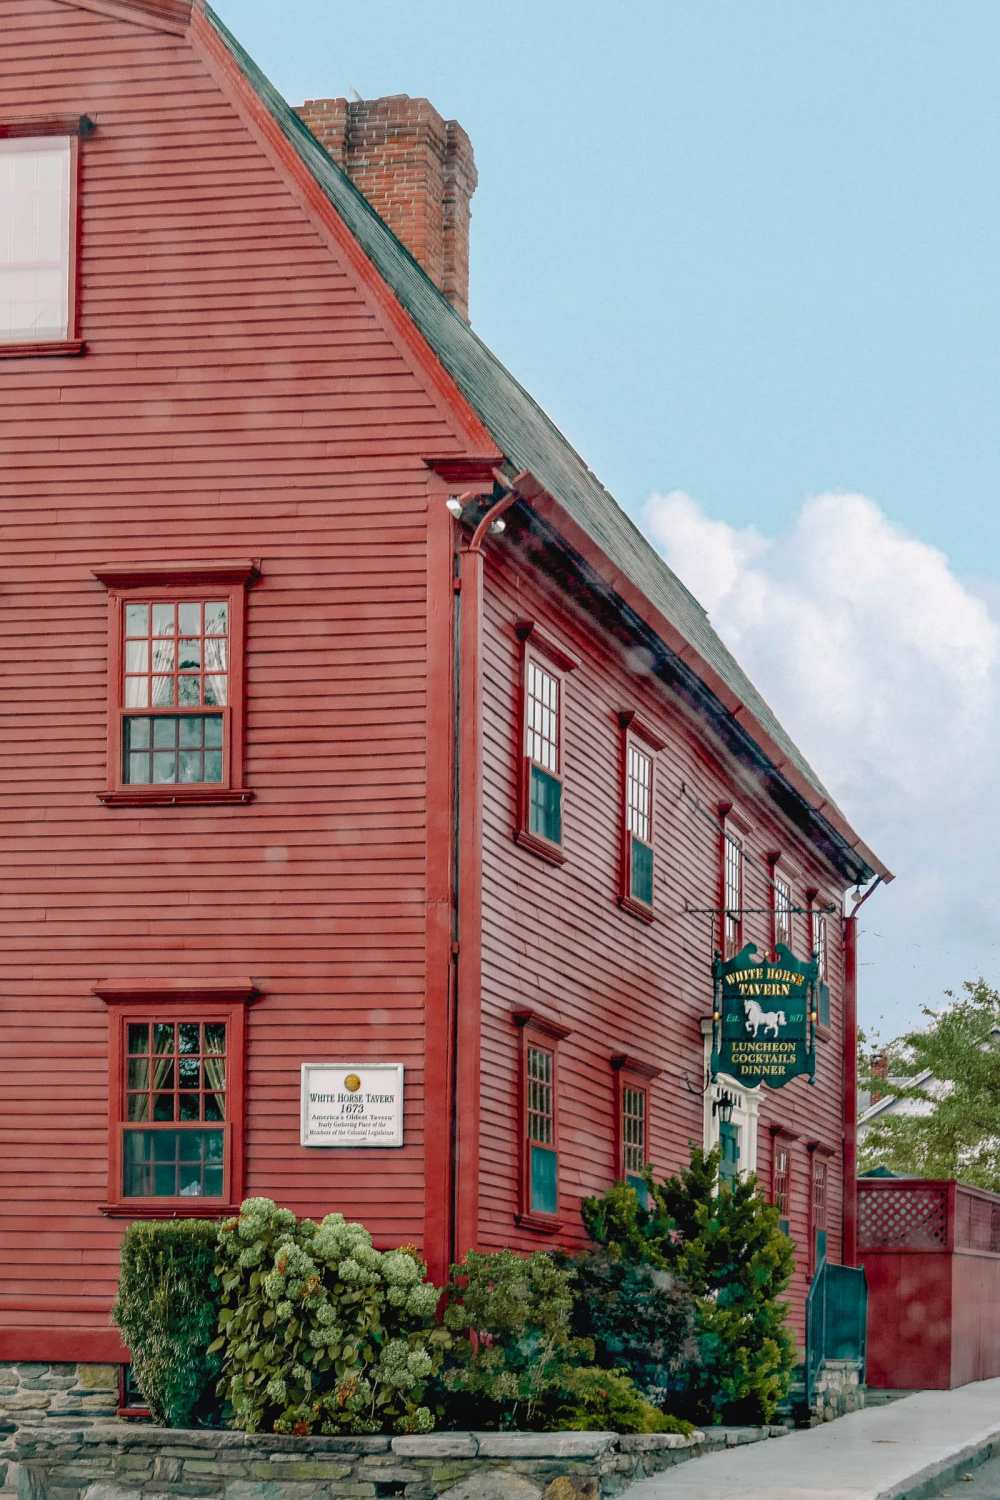 Oldest Tavern and pub in the USA